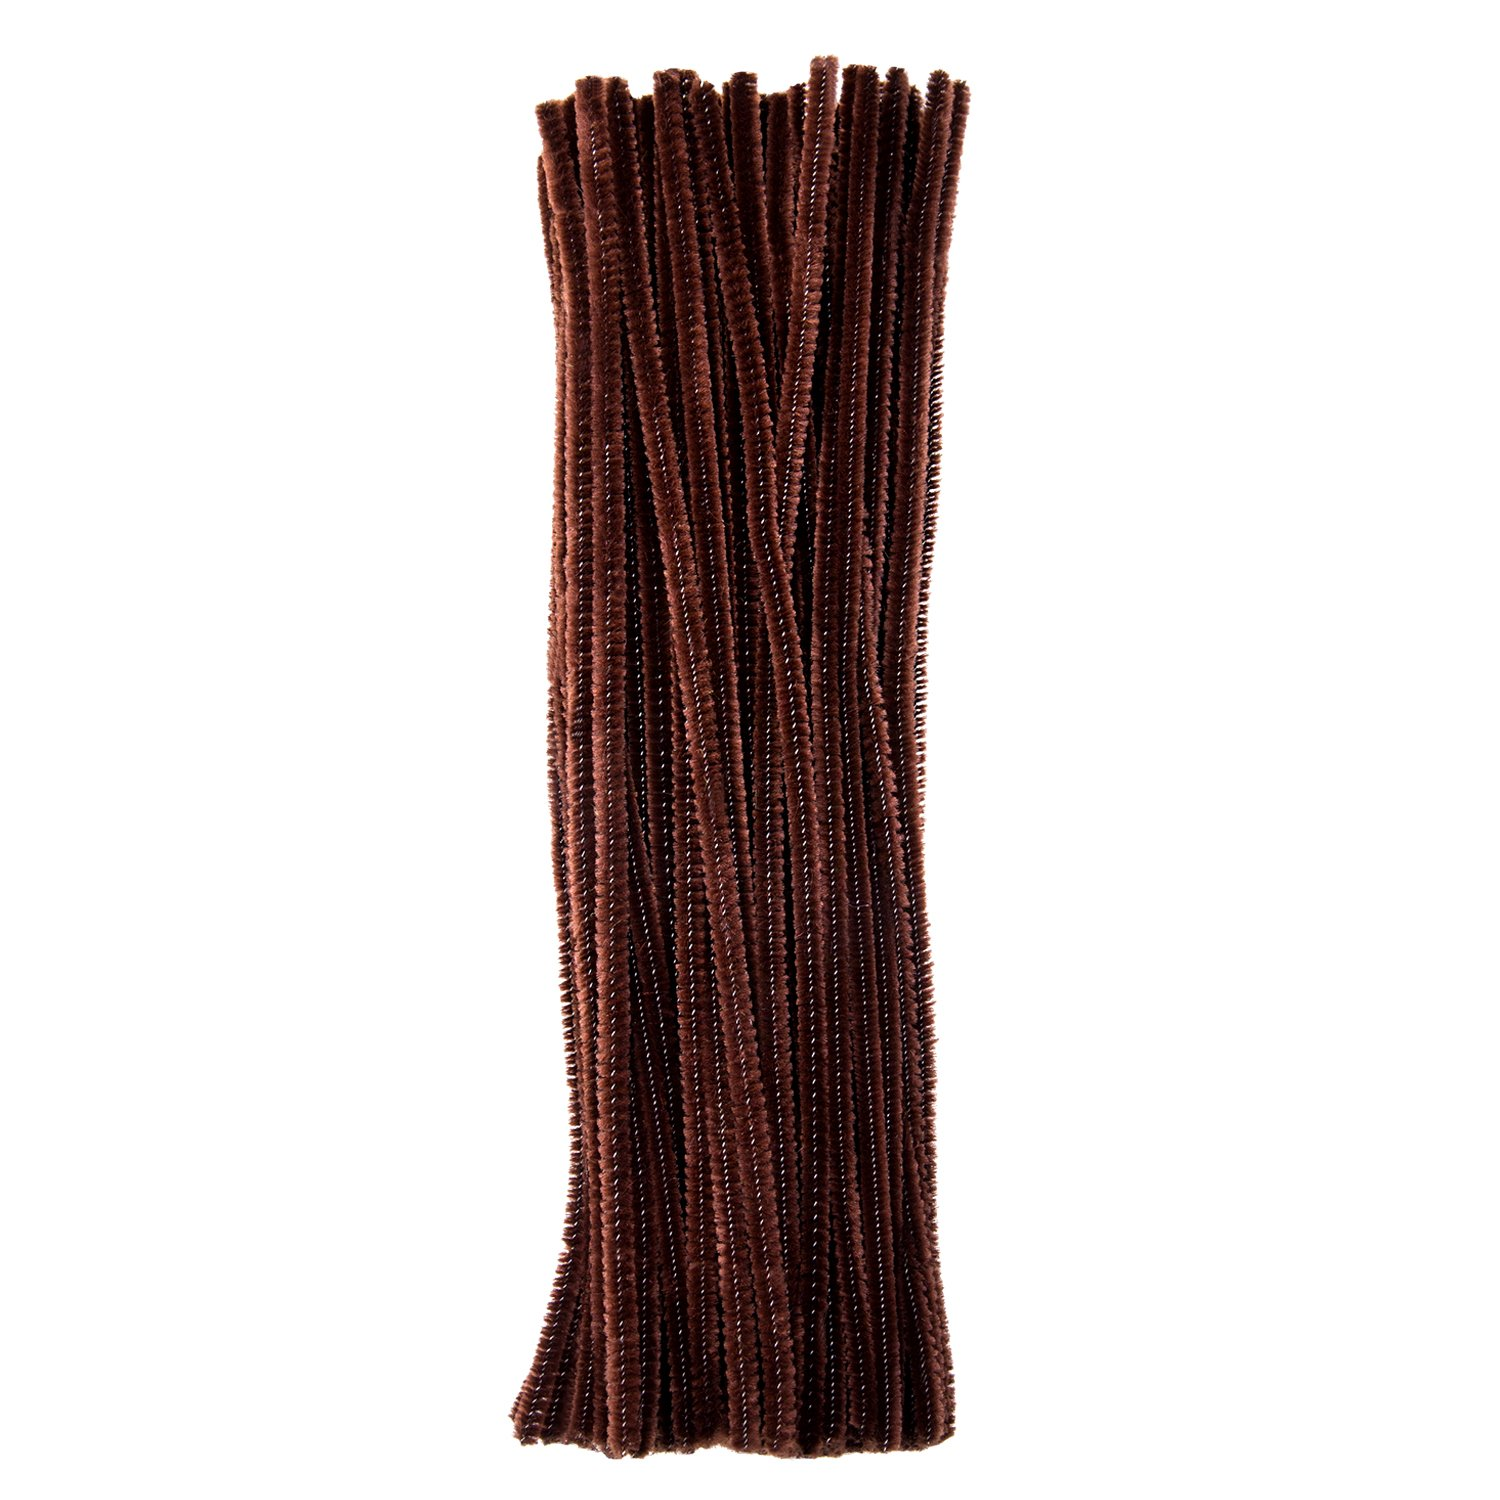 eBoot 100 Pieces Pipe Cleaners Chenille Stem for Arts and Crafts, 6 x 300 mm (Brown)